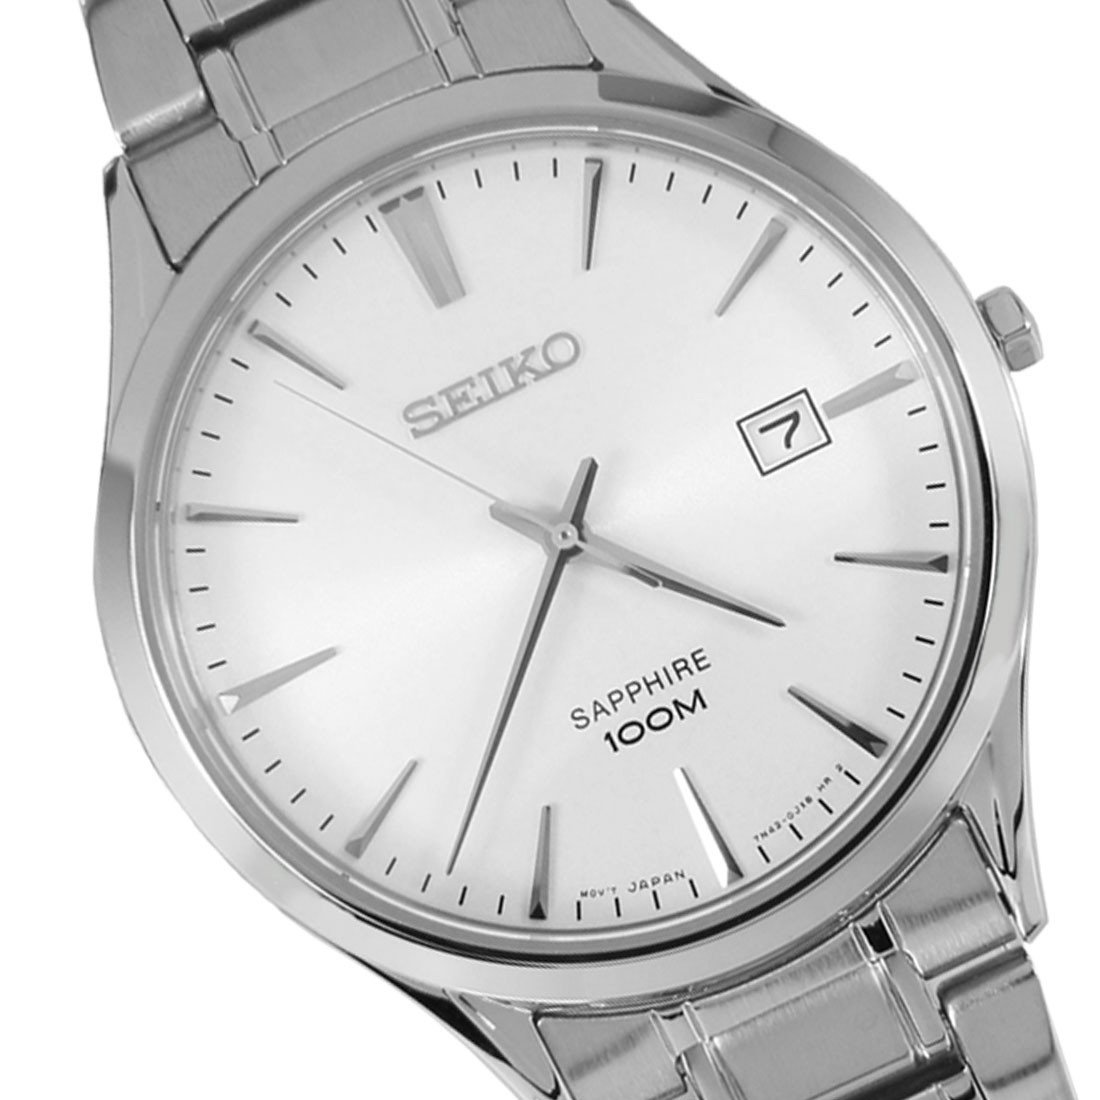 Seiko Quartz Classic Sapphire Mens Watch with Metal Bracelet